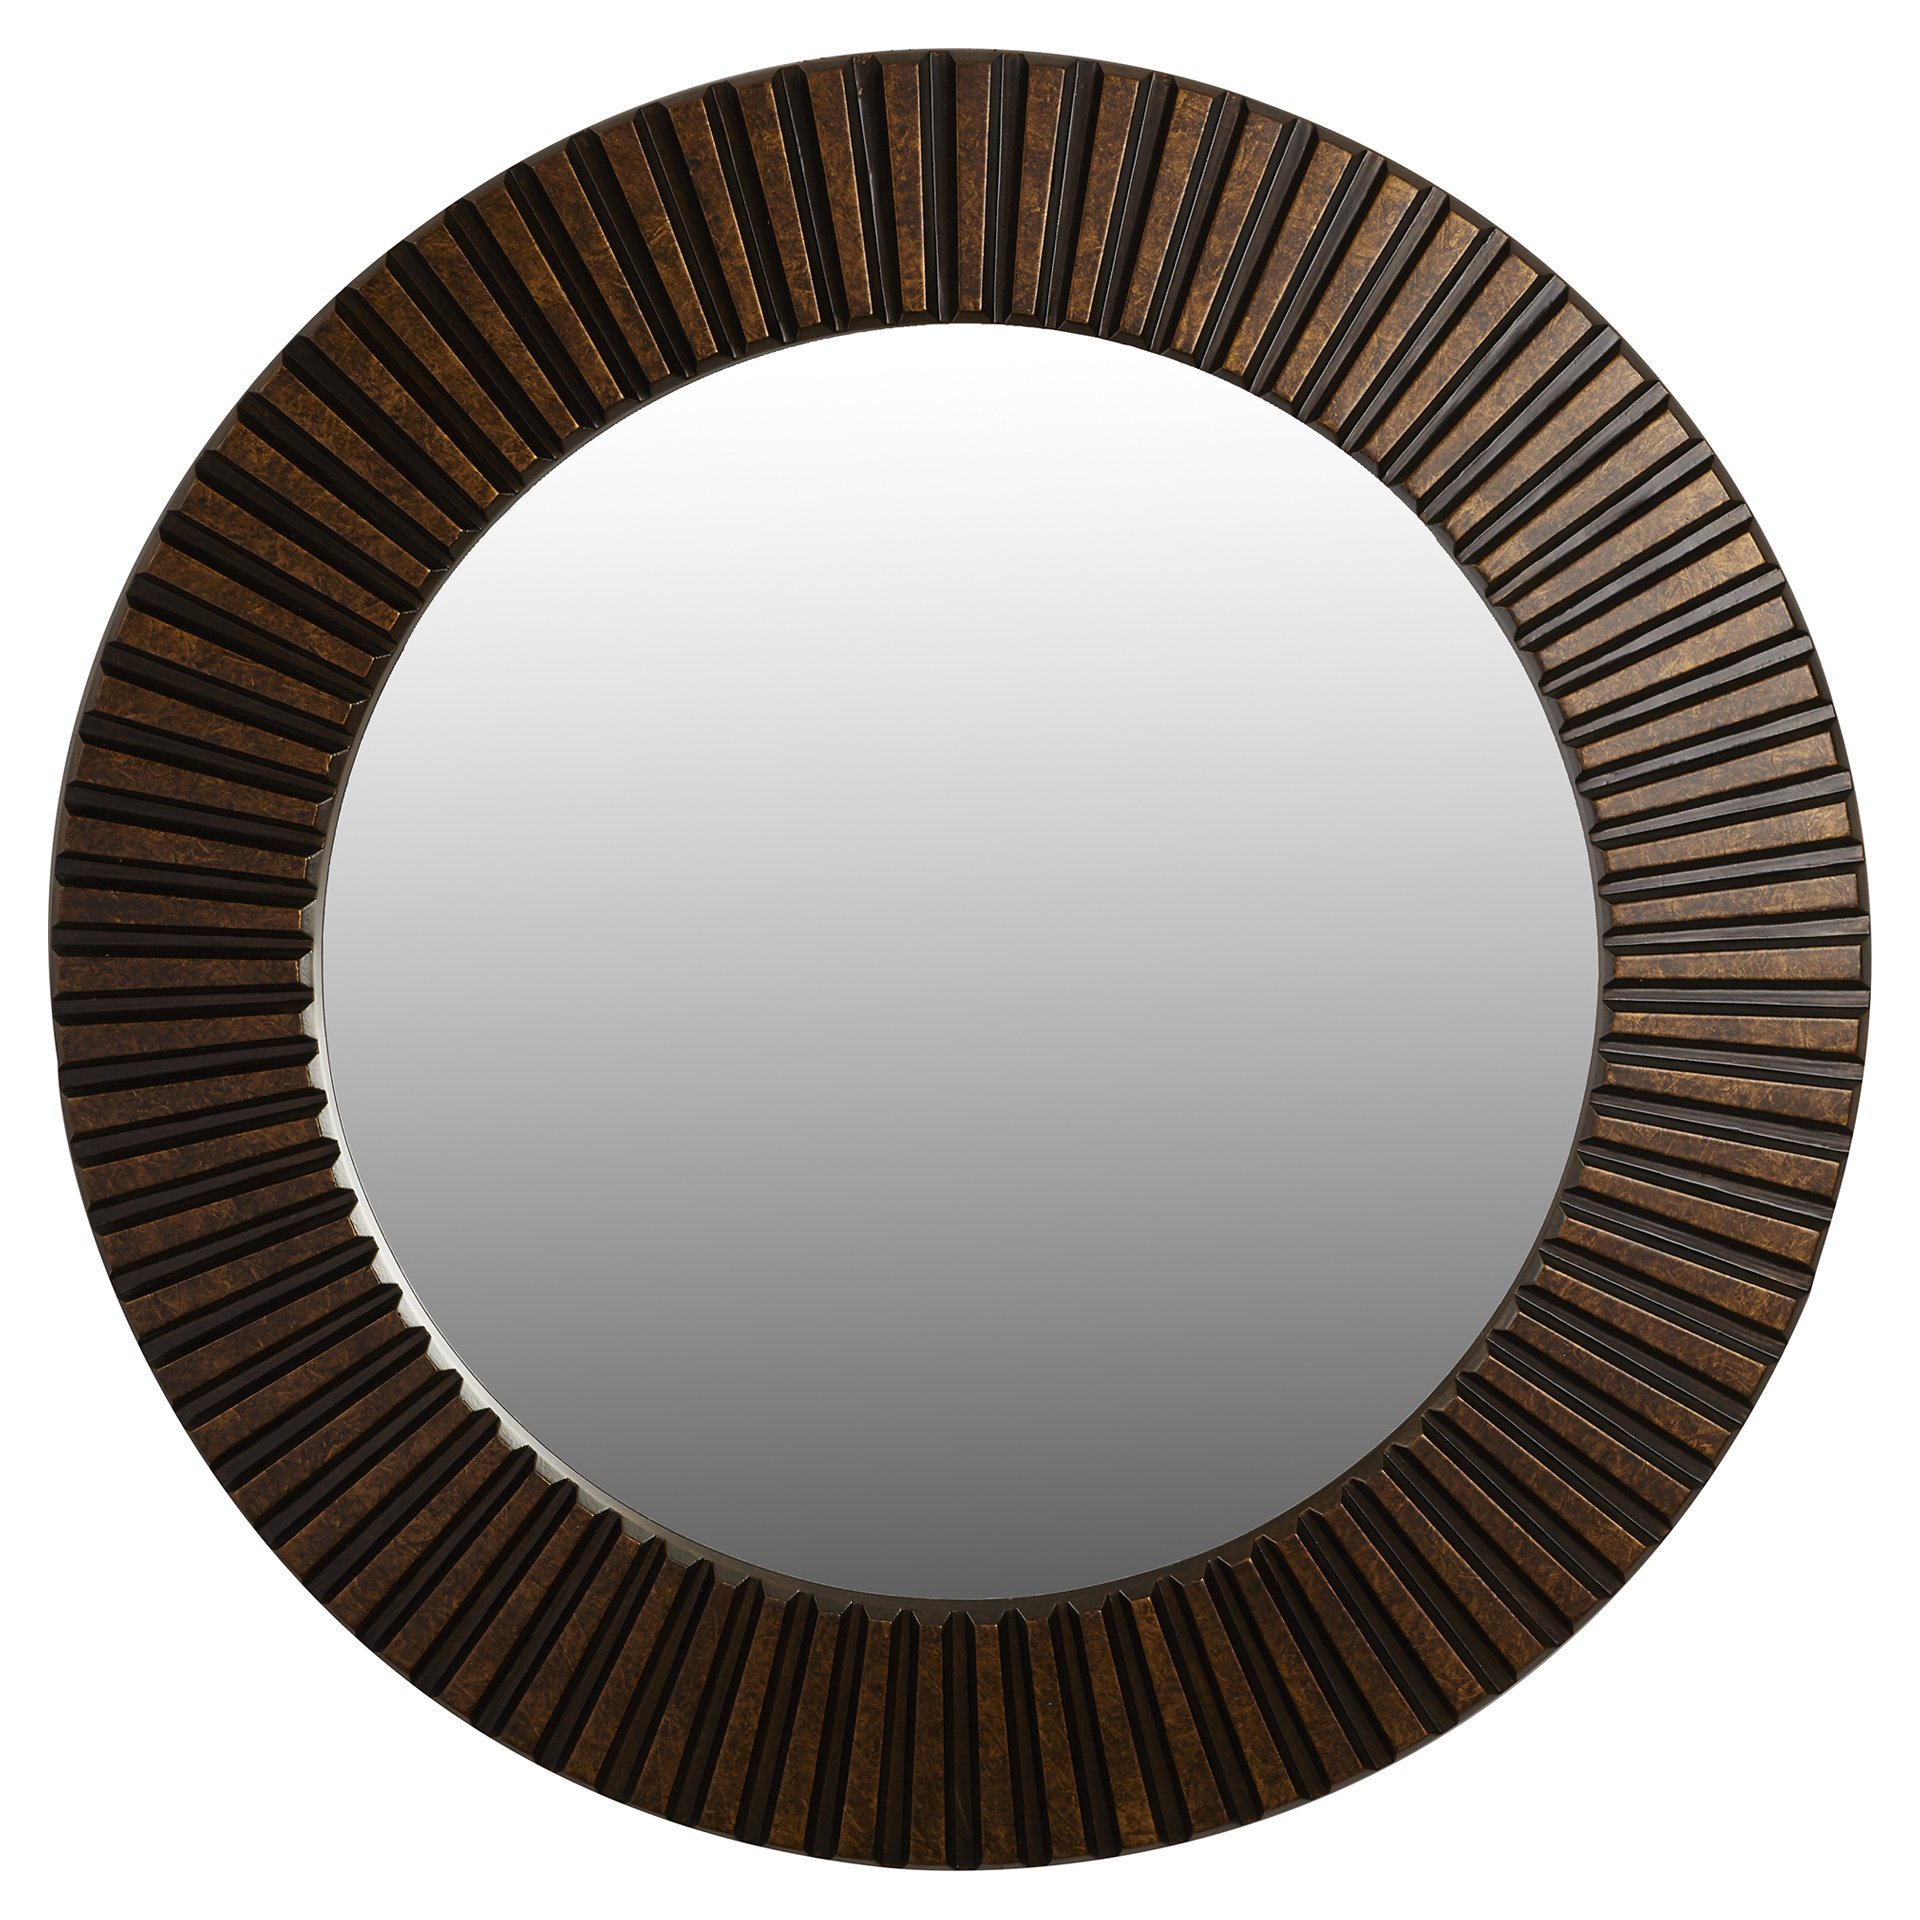 Round Eclectic Accent Mirrors For 2020 Round Eclectic Accent Mirror (View 2 of 20)